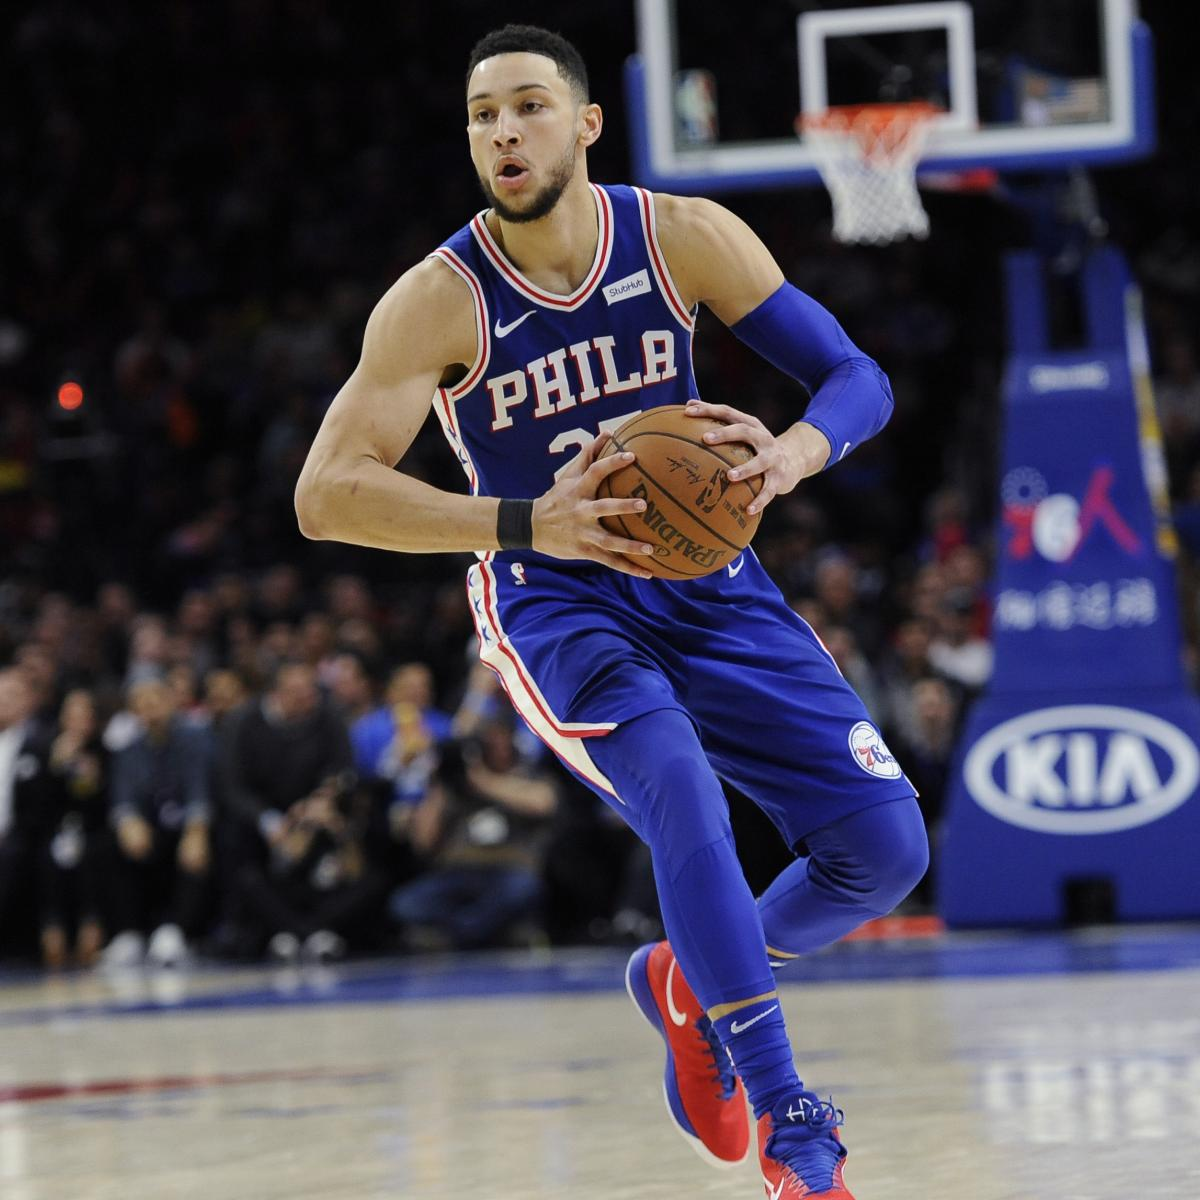 Nba Rookie Award Predictions For 2018 19 Season: NBA Awards Watch: Expert Predictions For Every Major